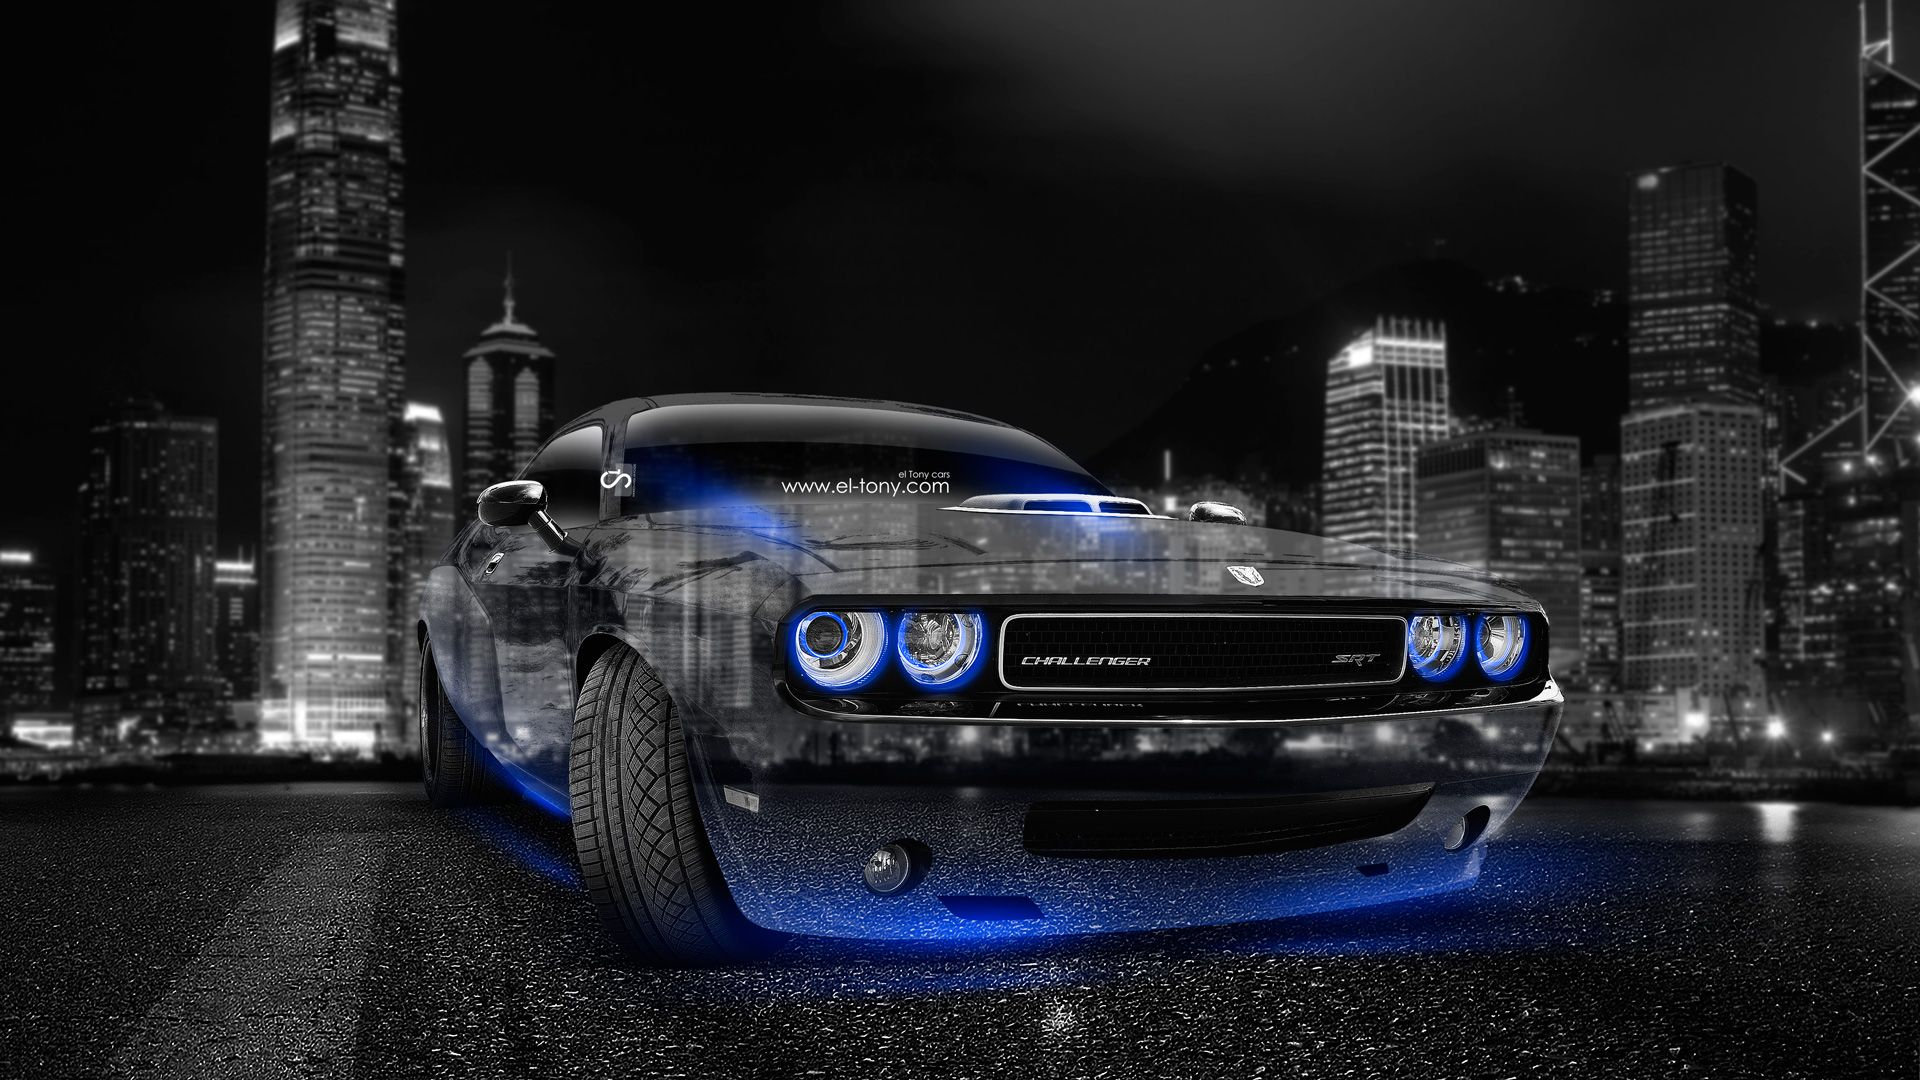 Merveilleux Dodge Challenger Muscle Crystal City Car 2014 Blue